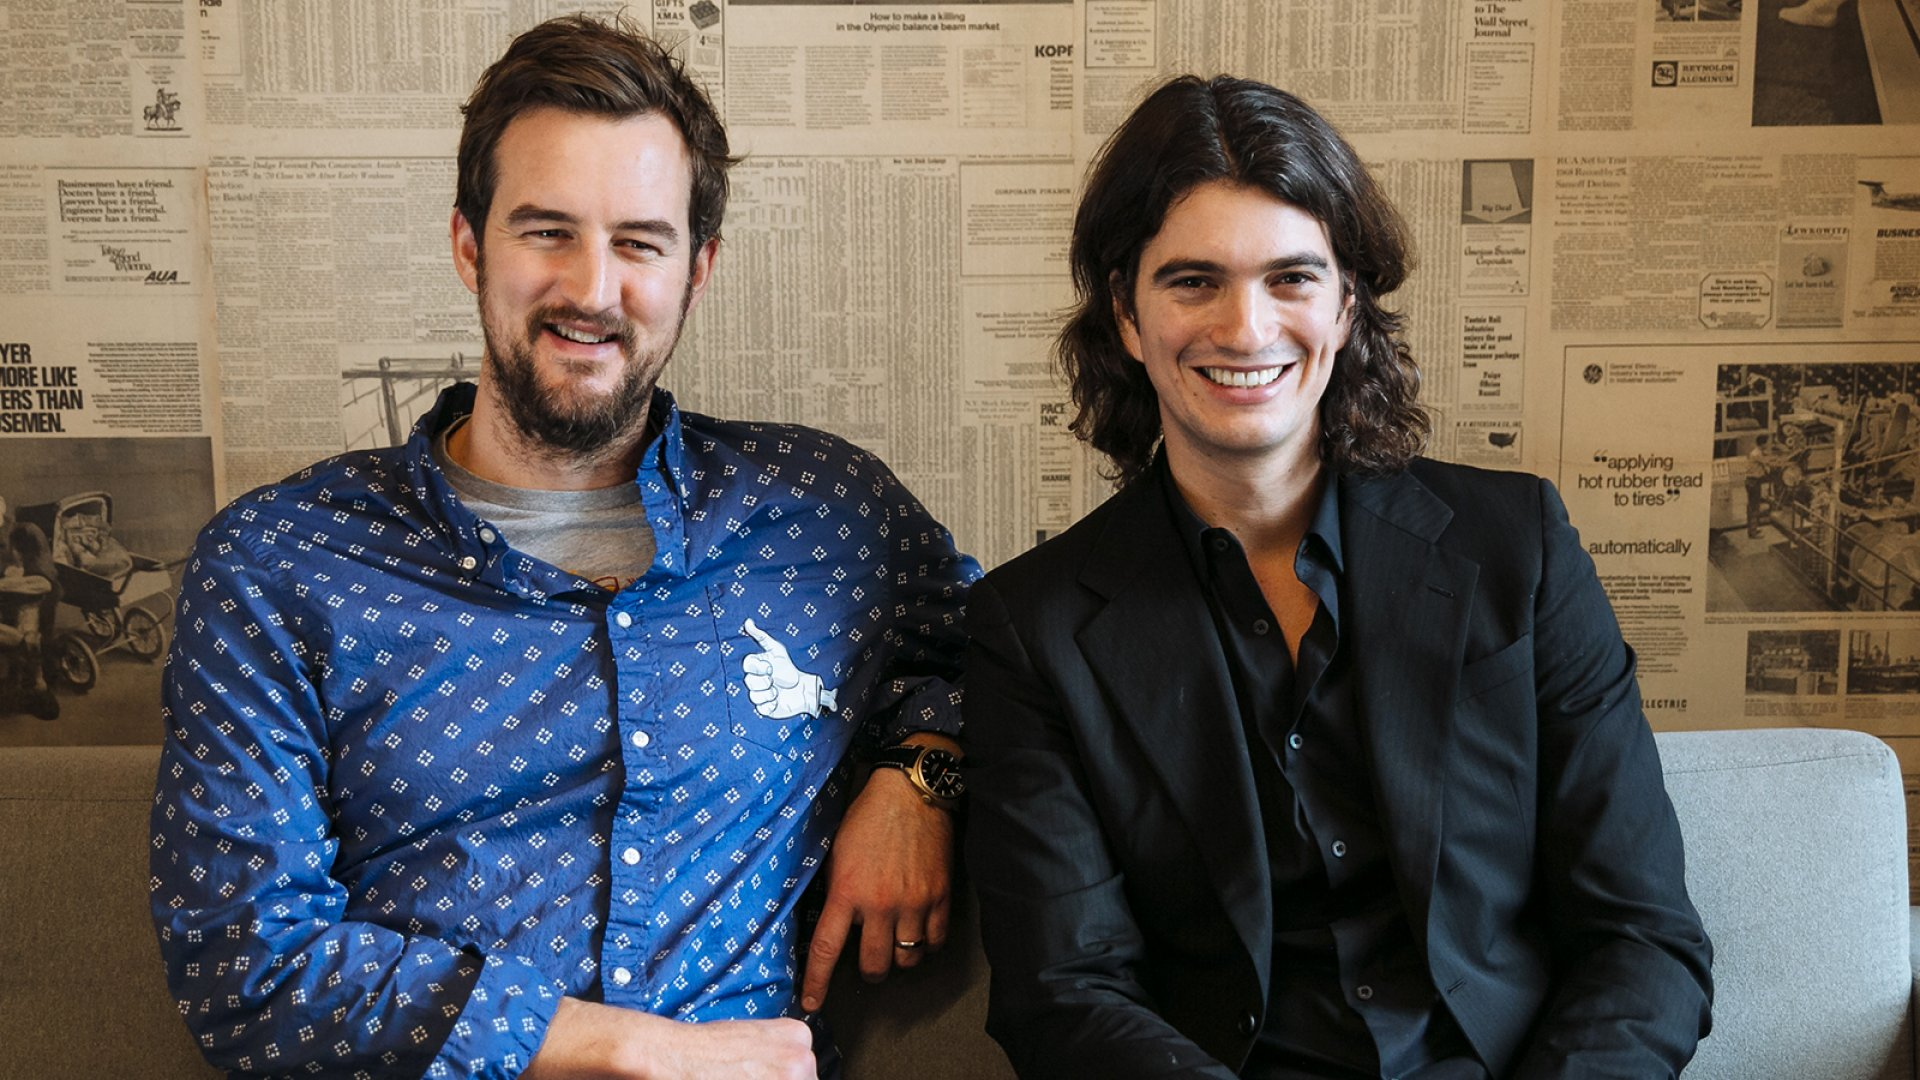 WeWork co-founders Miguel McKelvey (left) and Adam Neumann have worked together since 2008.